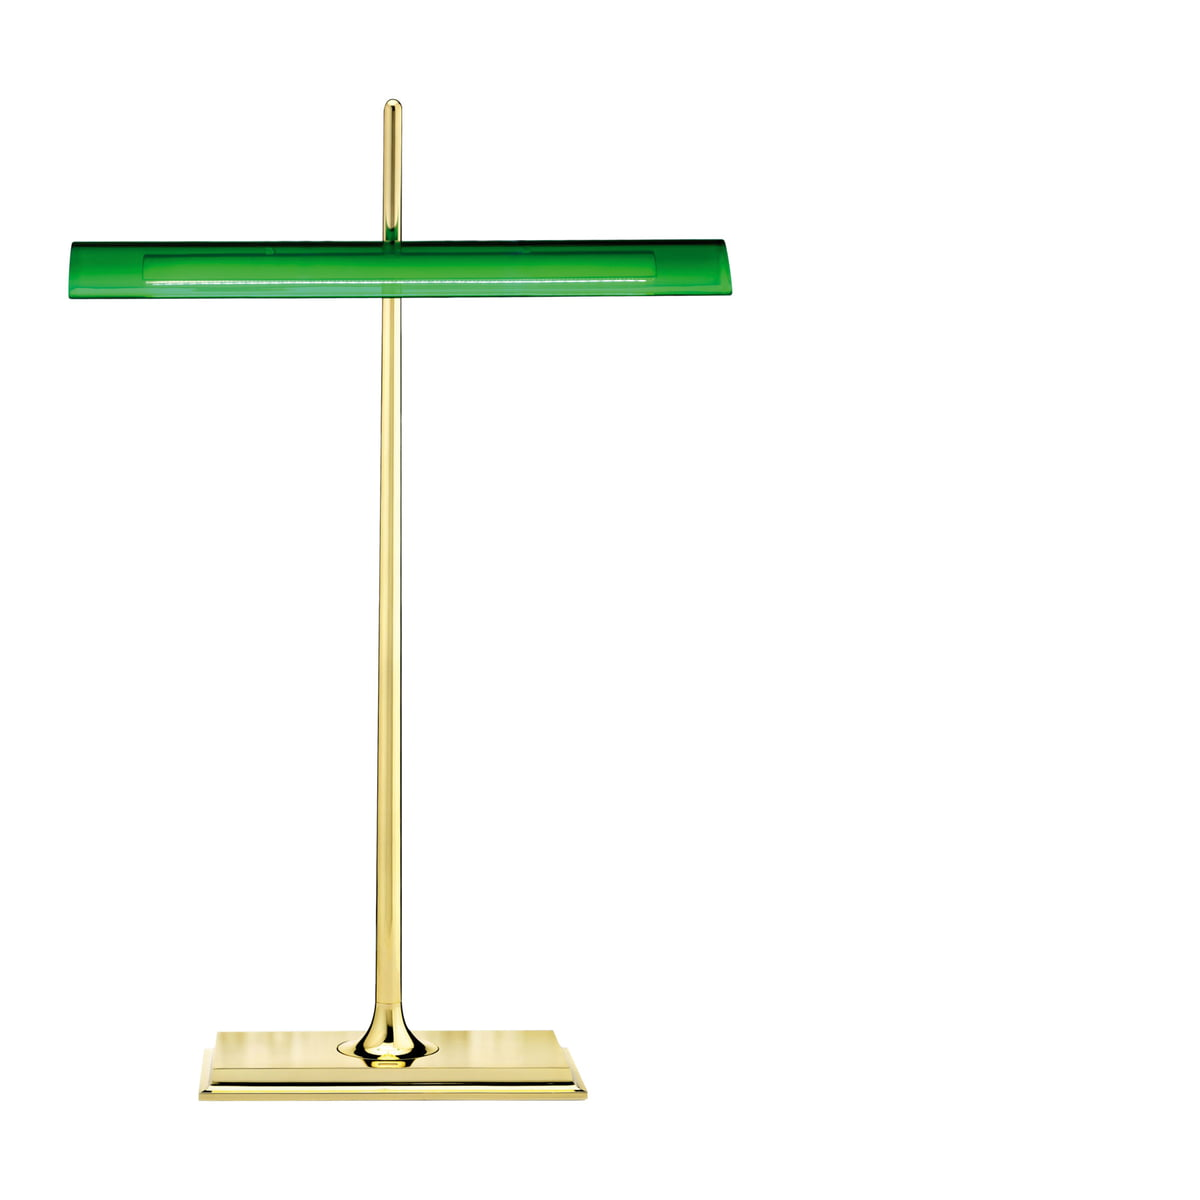 Charmant Flos   Goldman Table Lamp, Solid Brass, Green